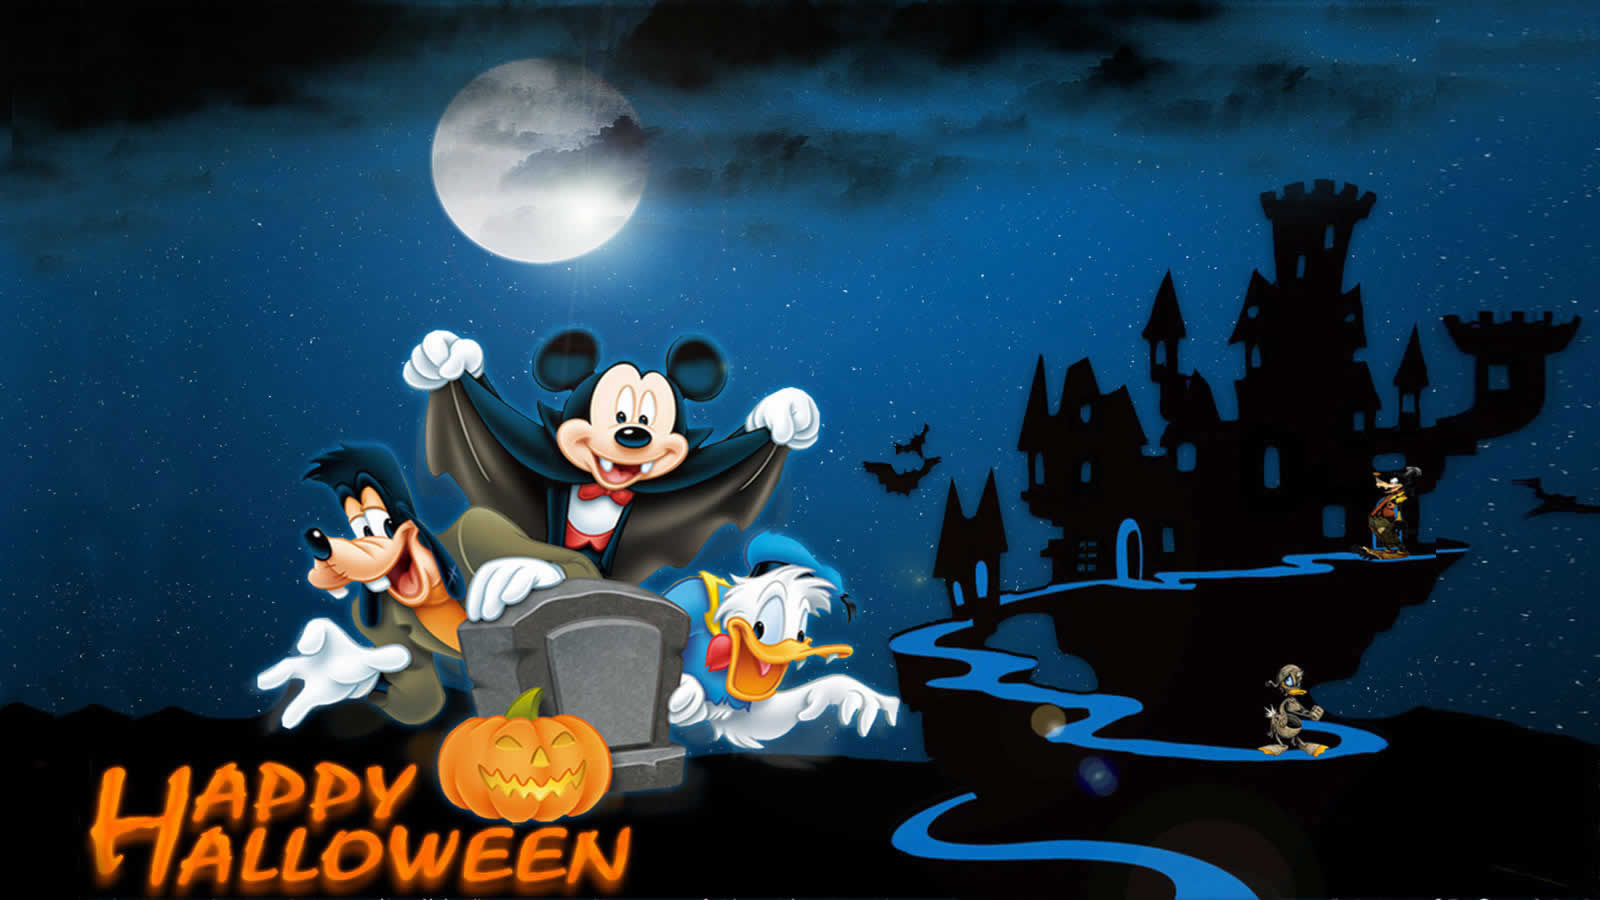 looney tunes halloween wallpaper - wallpapersafari